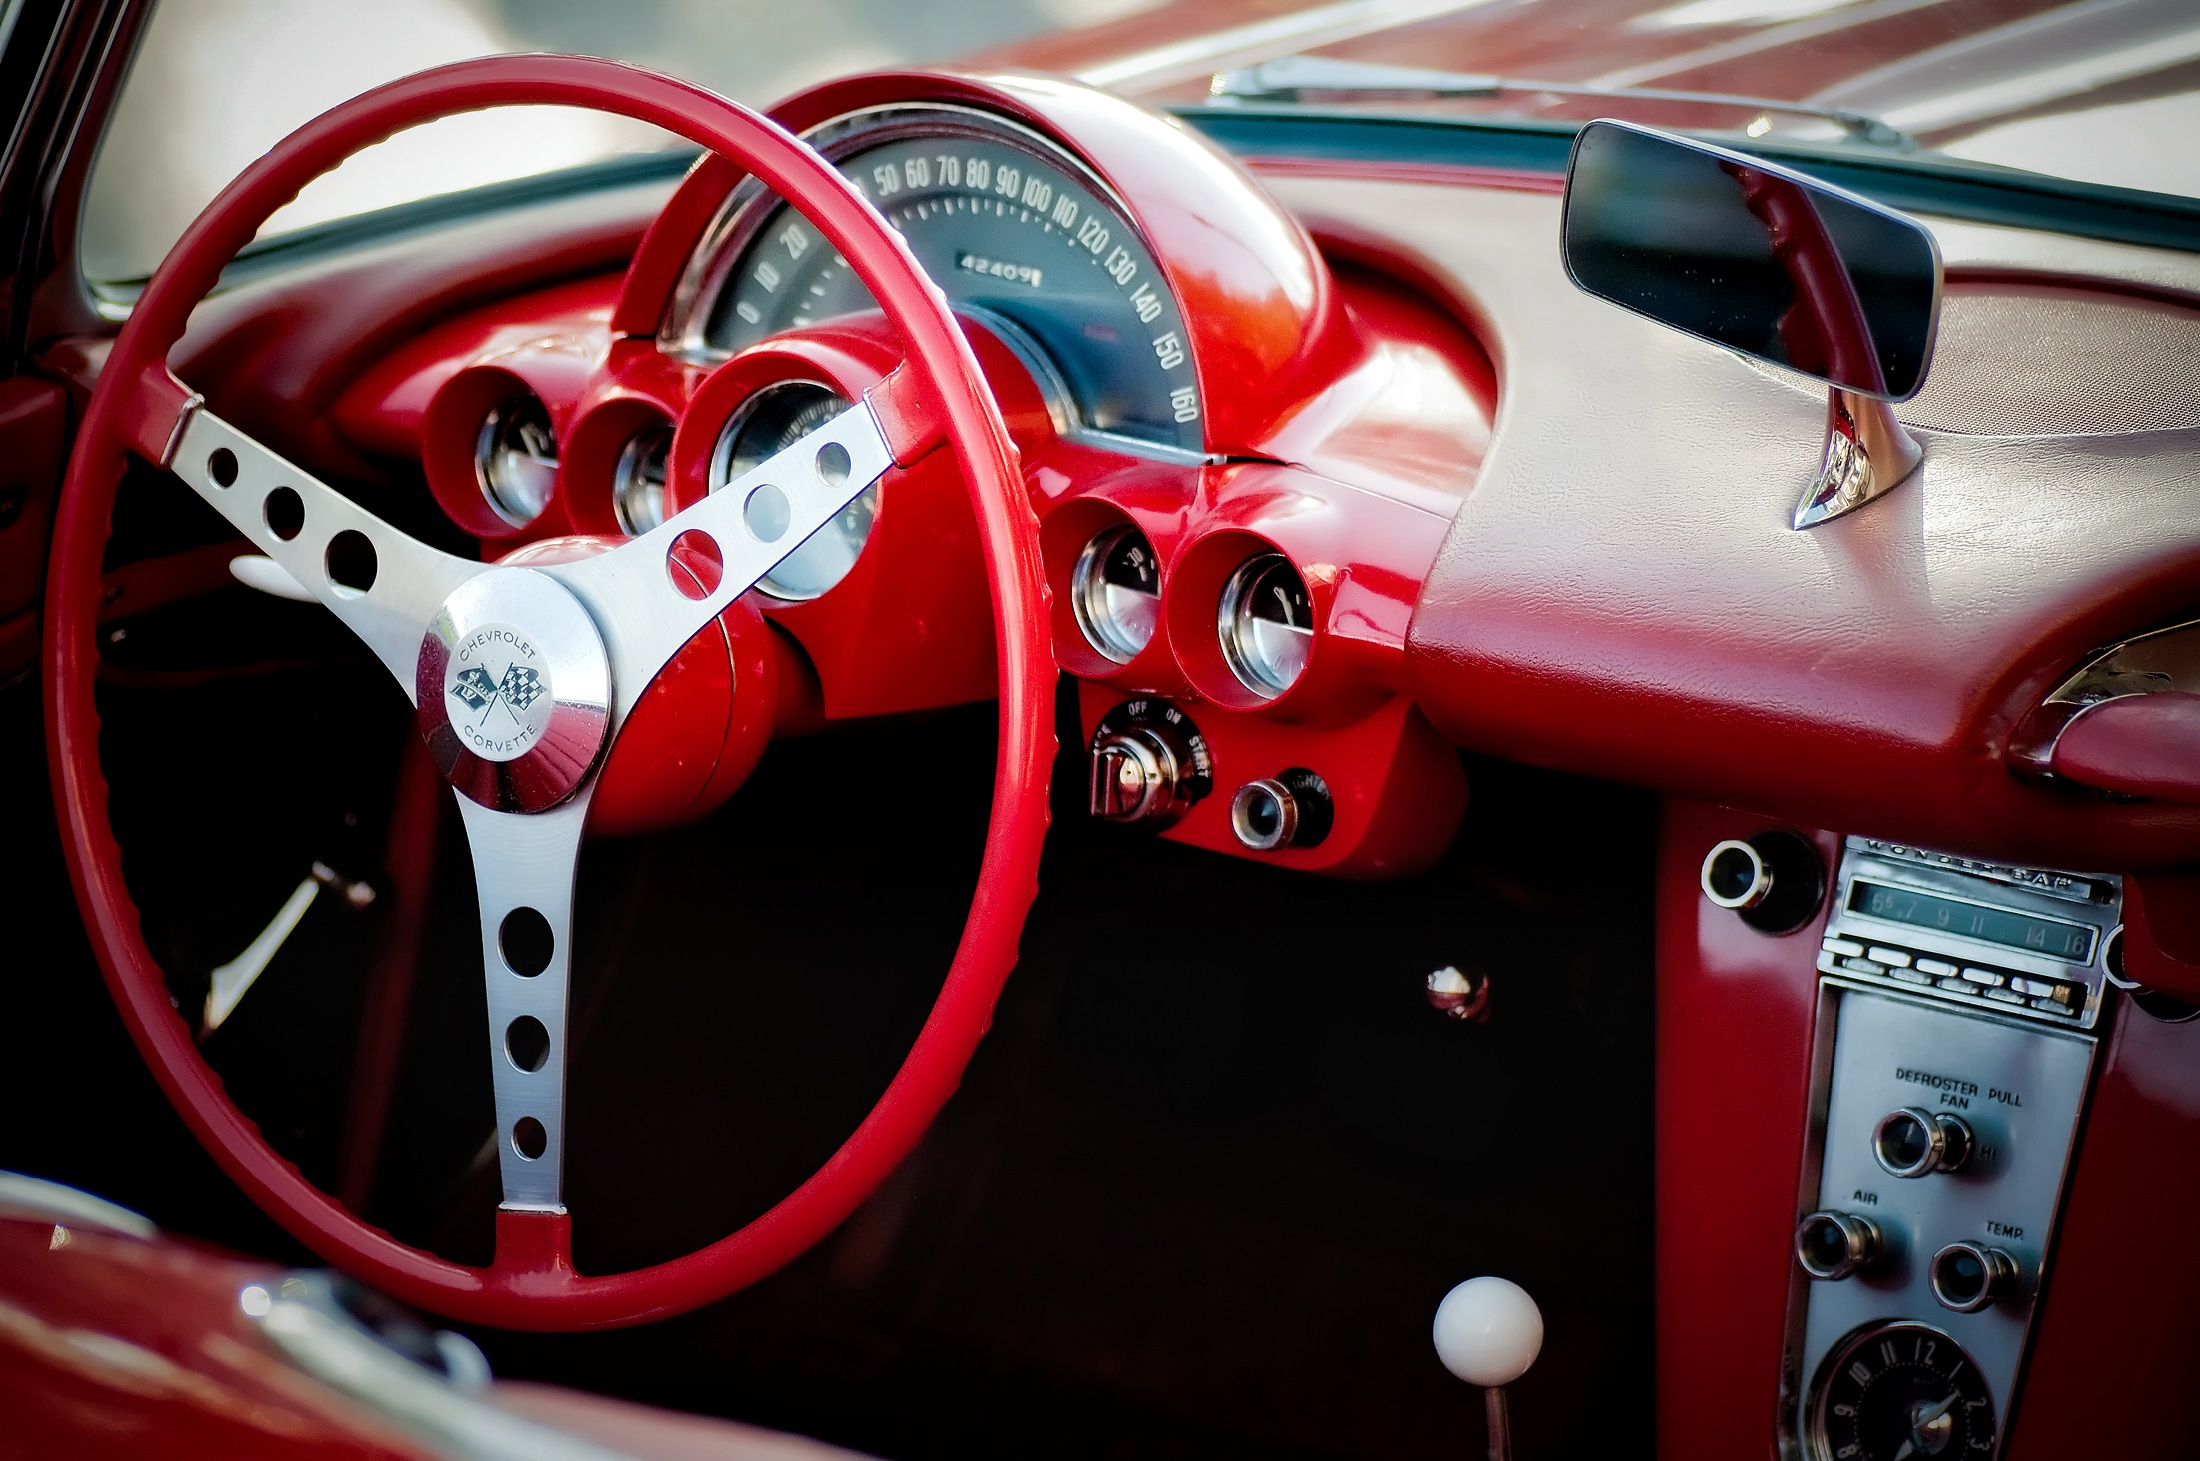 [iphoto of the steering wheel and dashboard of a red vintage sports car]